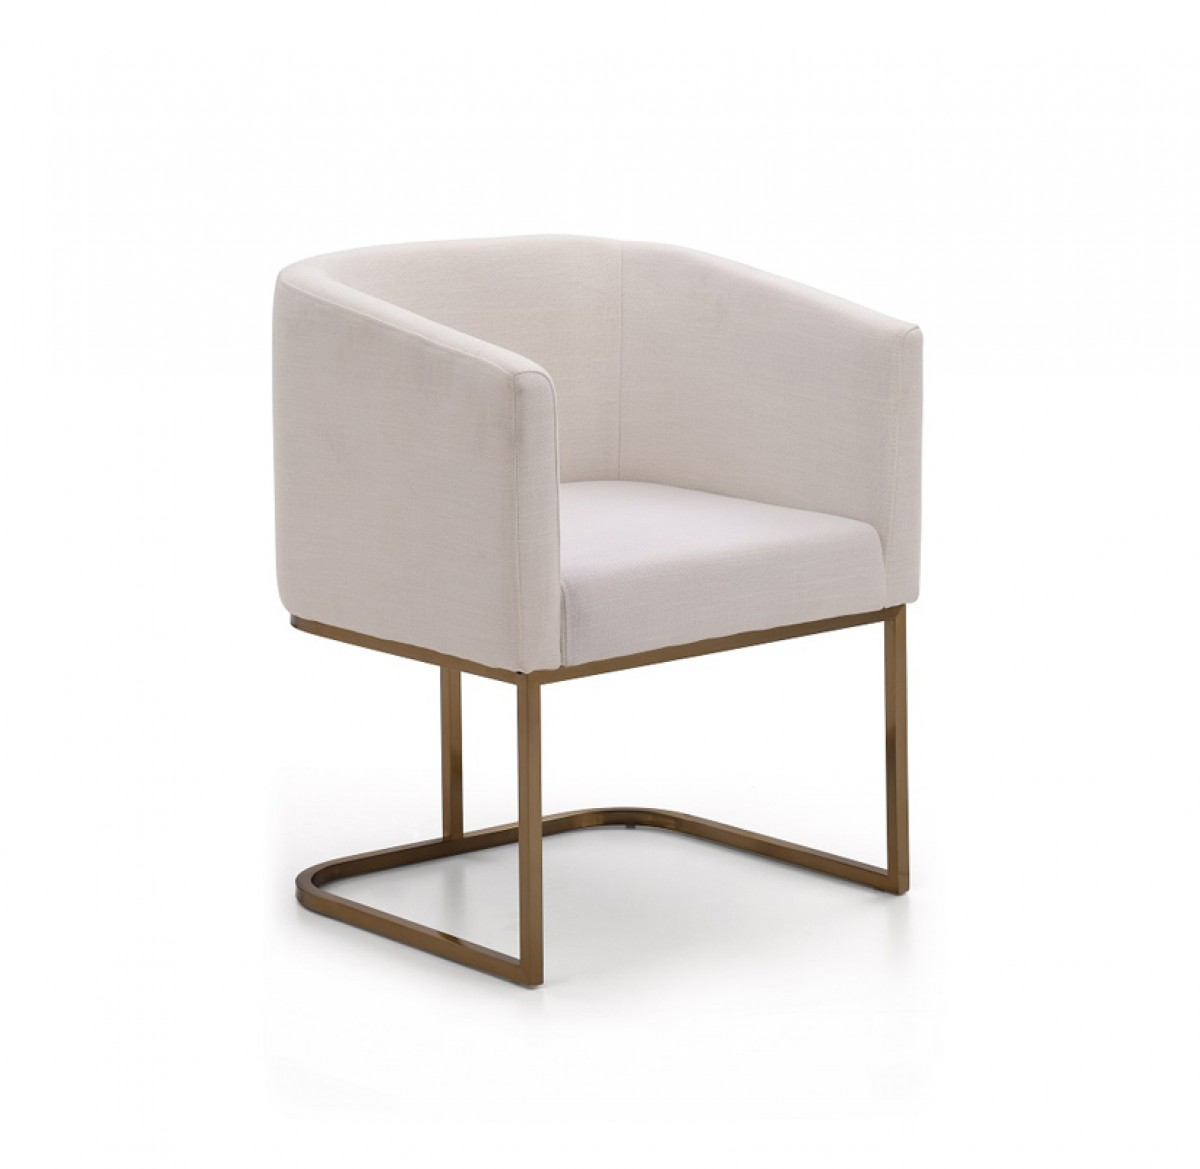 Modern White Dining Chair Modrest Yukon Modern White Fabric And Antique Brass Dining